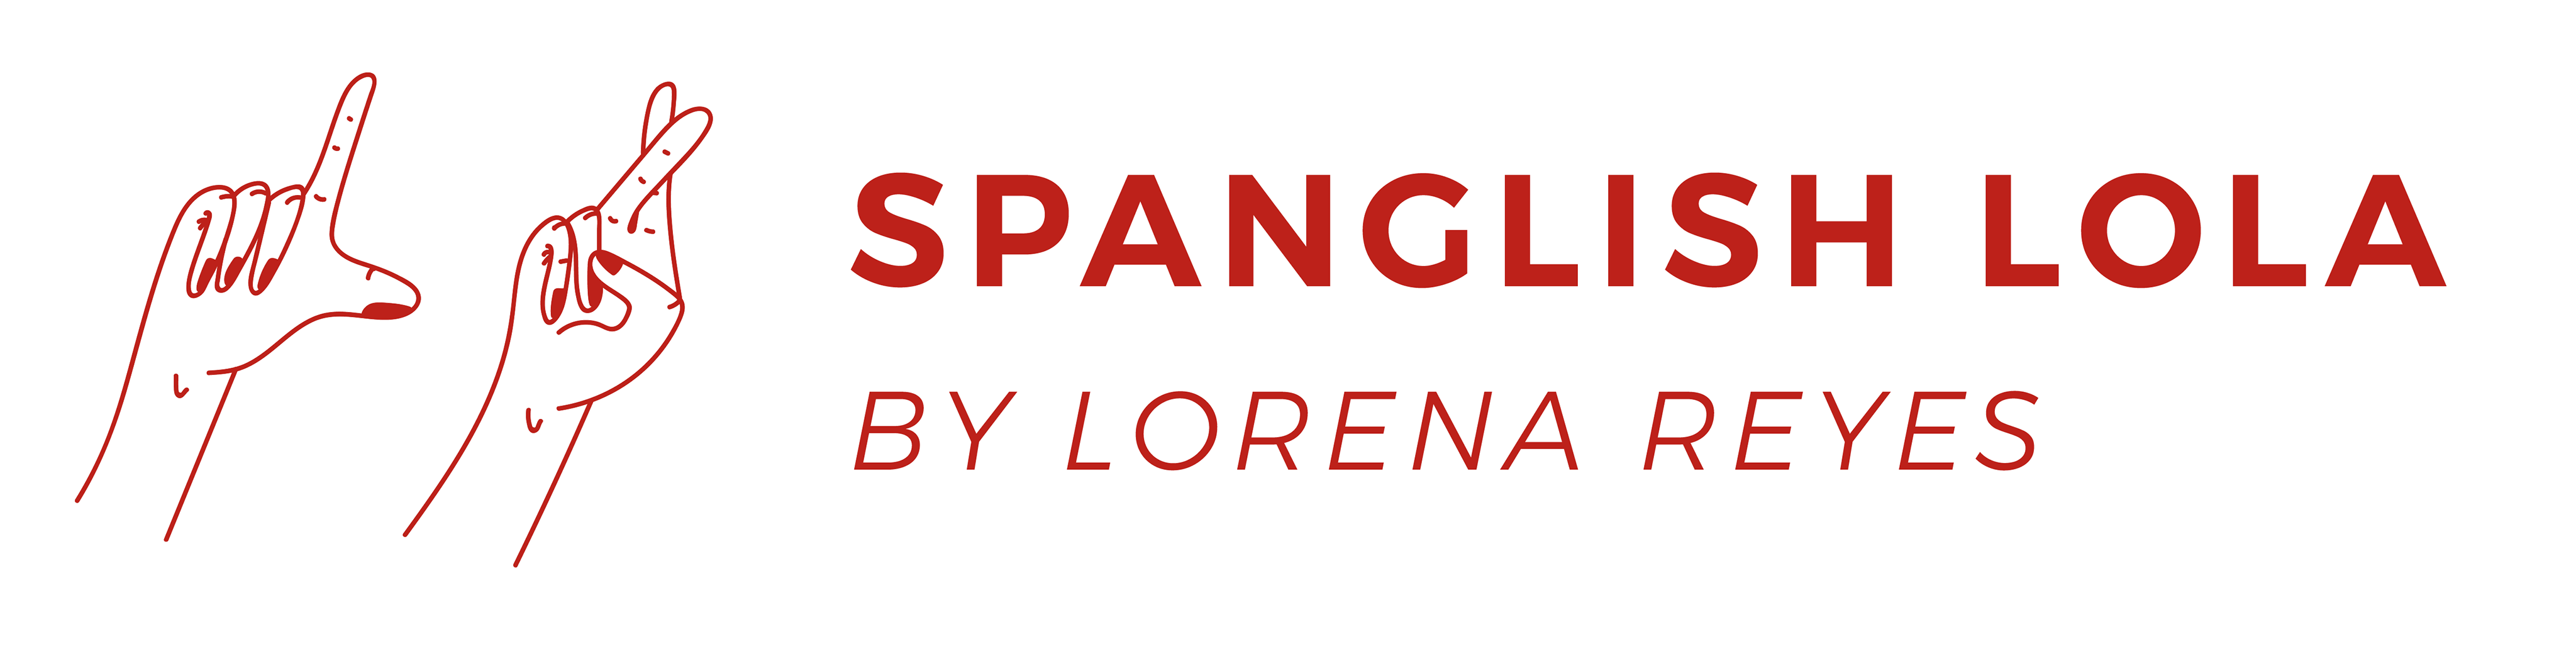 Spanglish Lola by Lorena Reyes